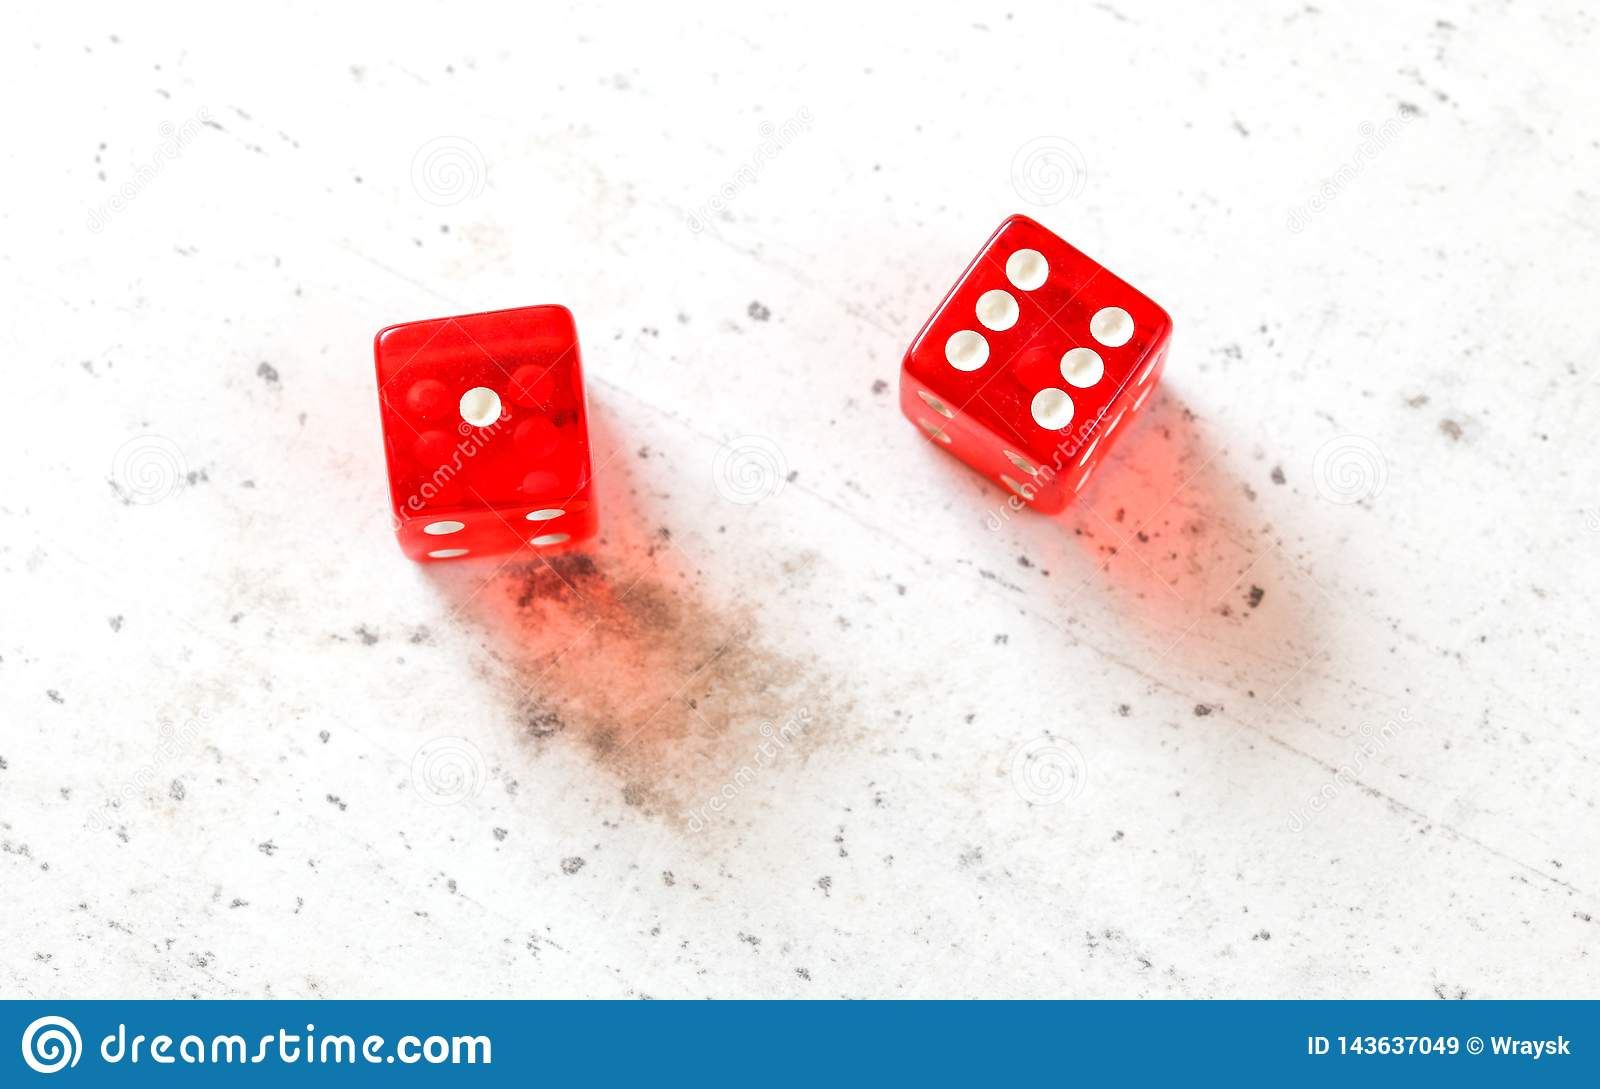 Two red craps dices showing Natural or Seven Out number 1 and 6 overhead shot on white board